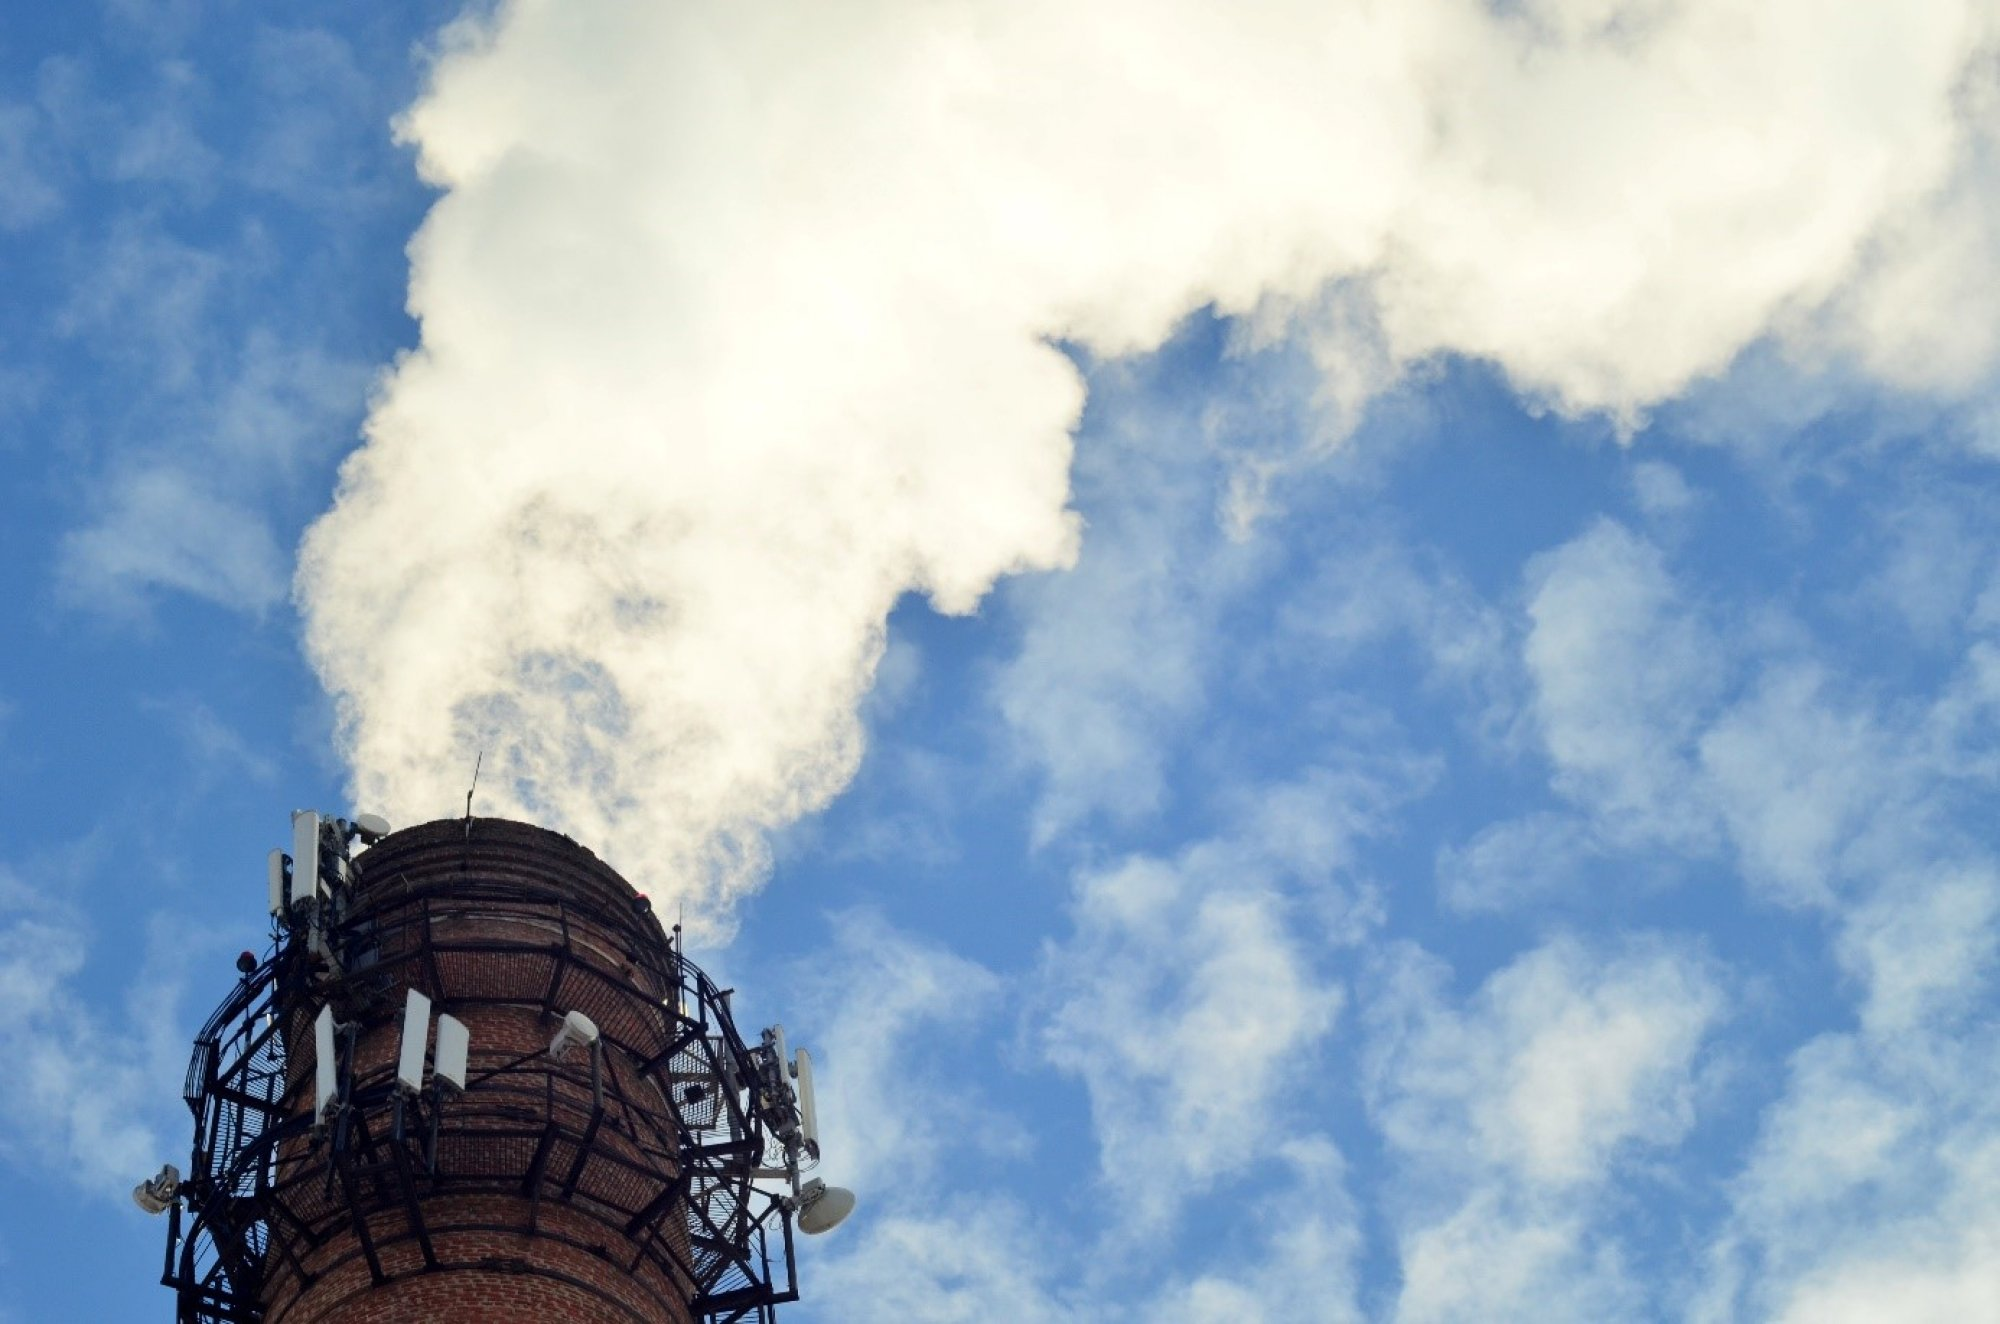 Don't waste carbon to the sky